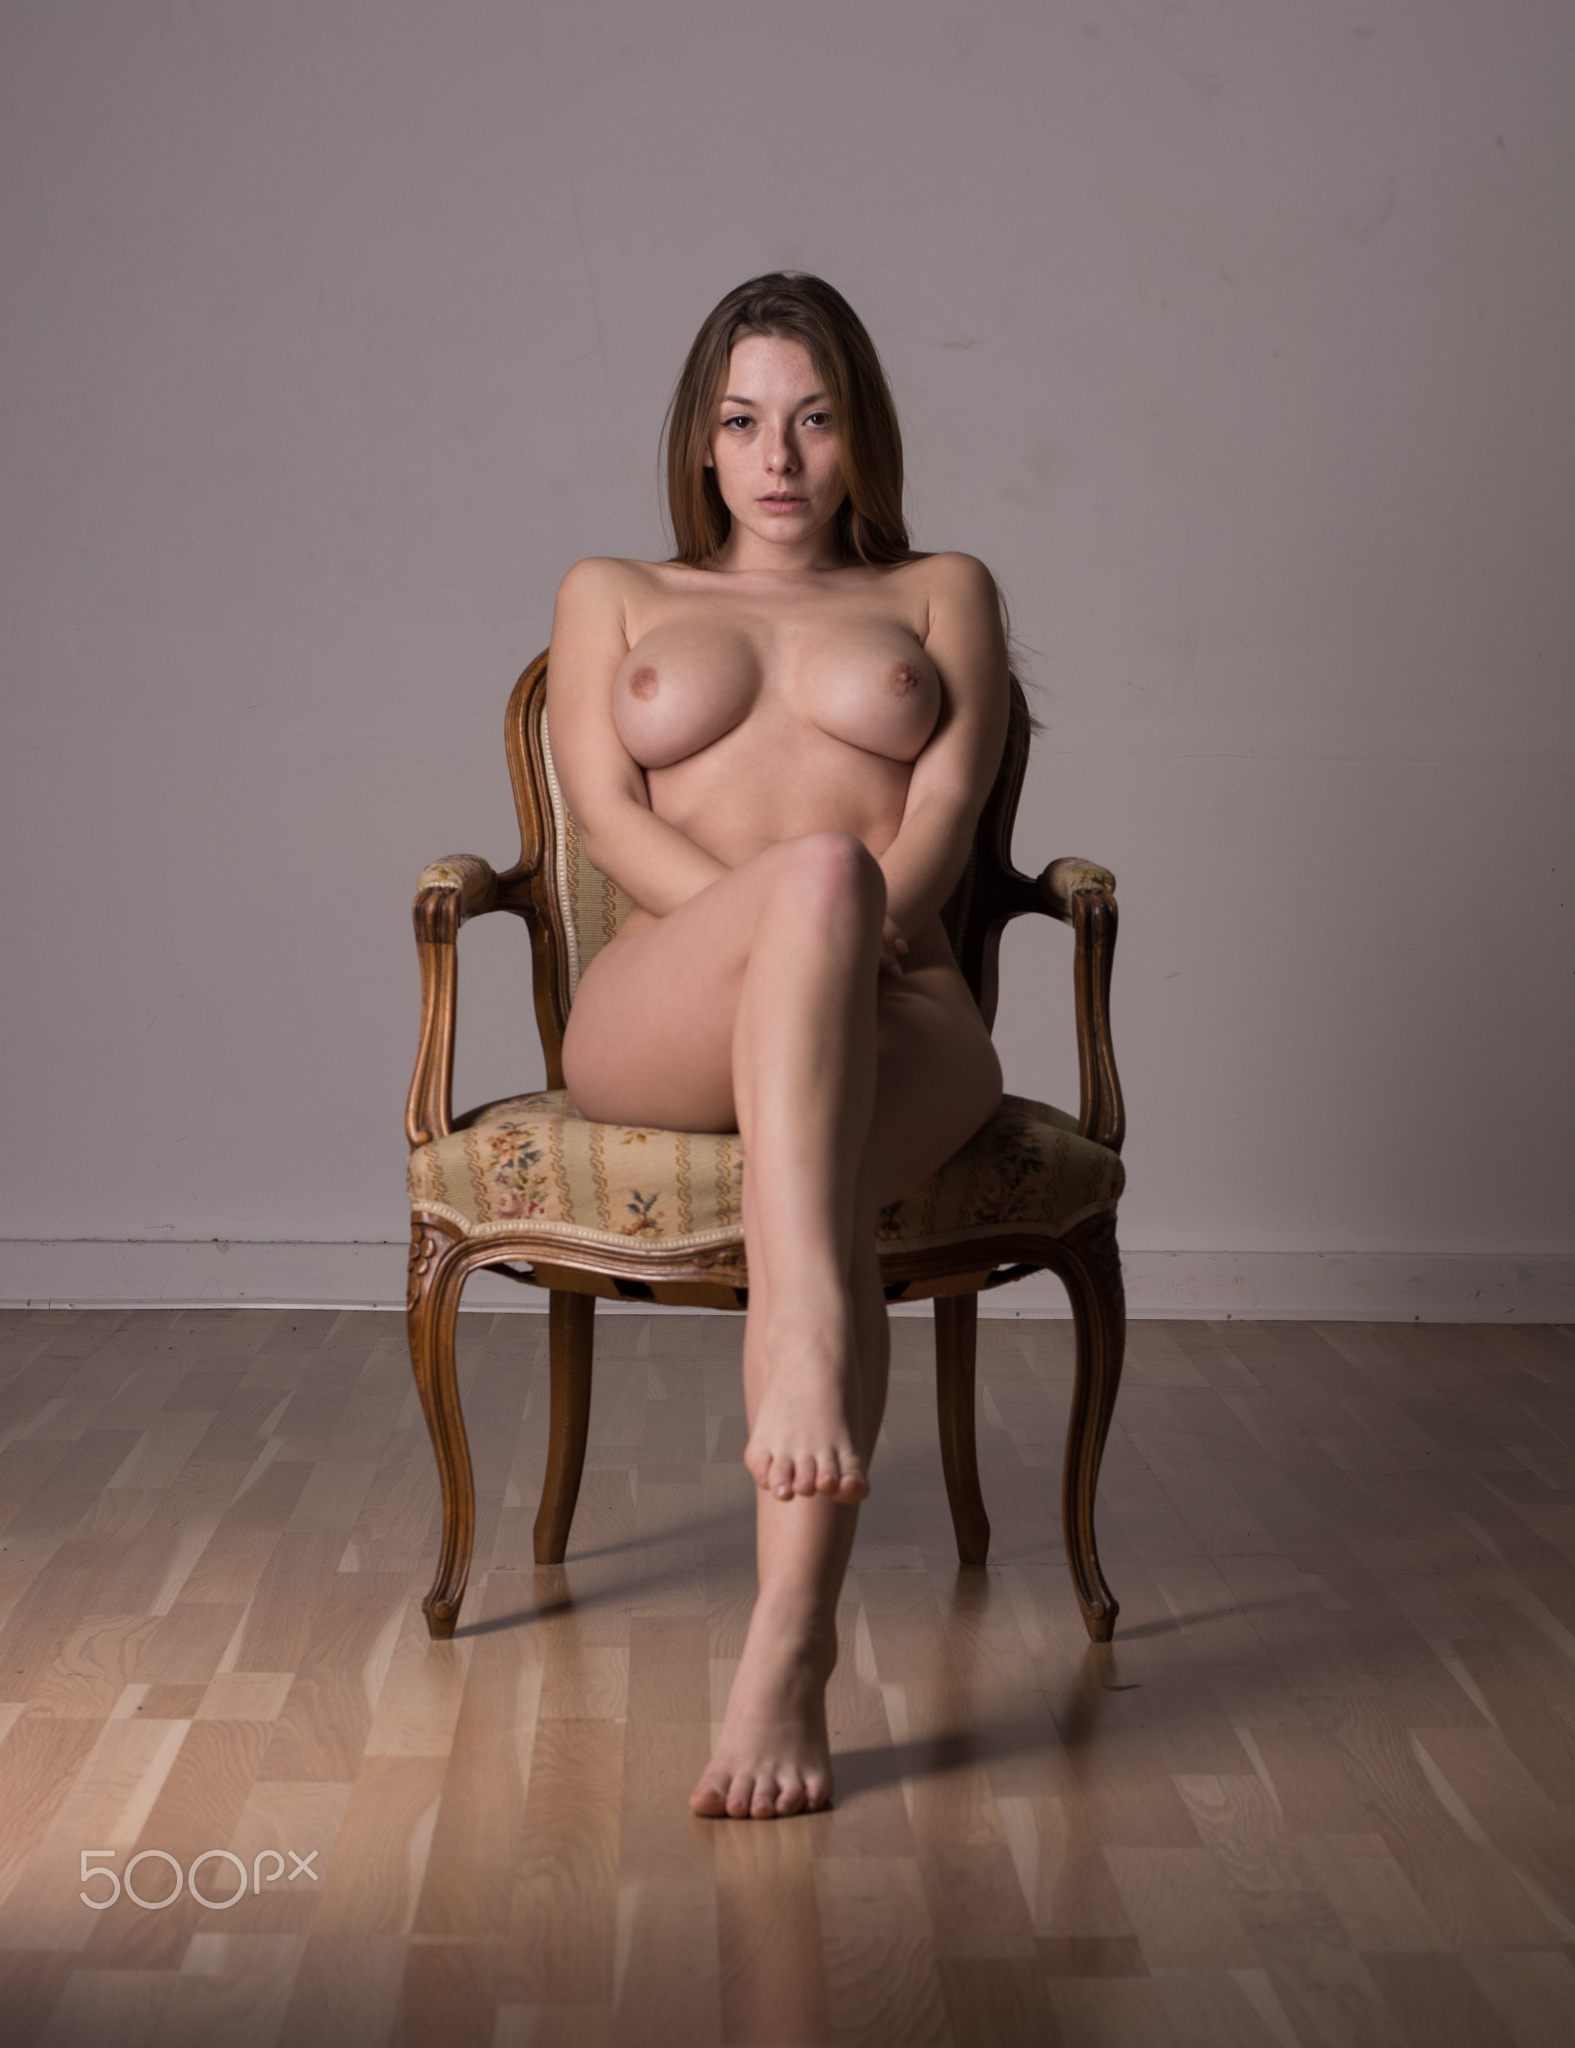 Olga Kobzar Nude Pictures. Rating = 8.98/10